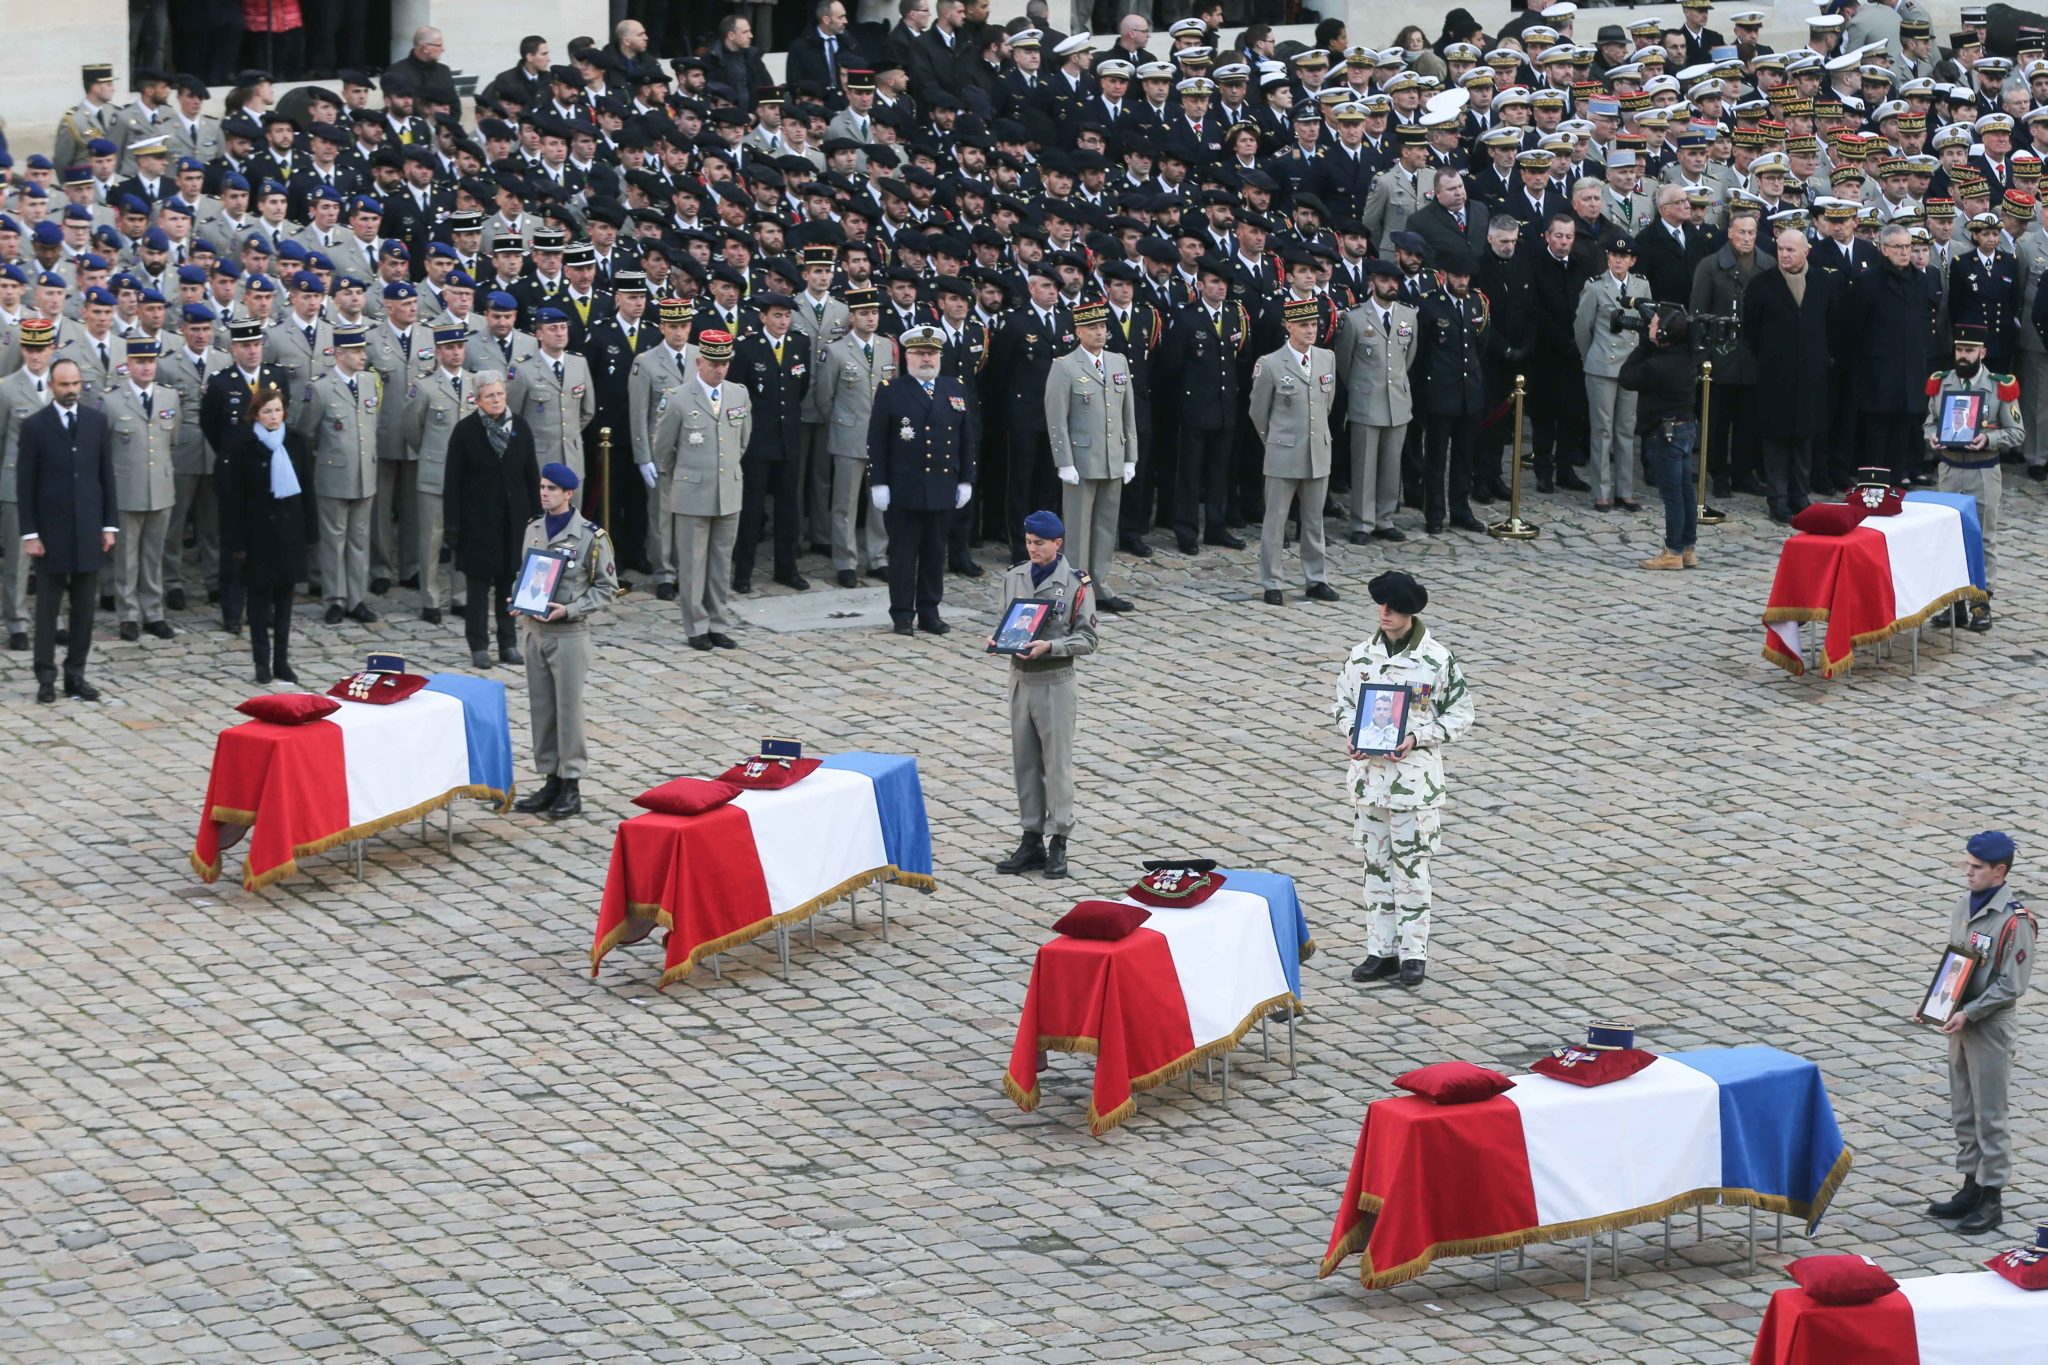 Soldiers, officials and relatives attend a tribute ceremony on December 2, 2019 at the Invalides monument, in Paris, for the 13 French soldiers killed in Mali. In its biggest military funeral in decades, France is honoring 13 soldiers killed when their hel